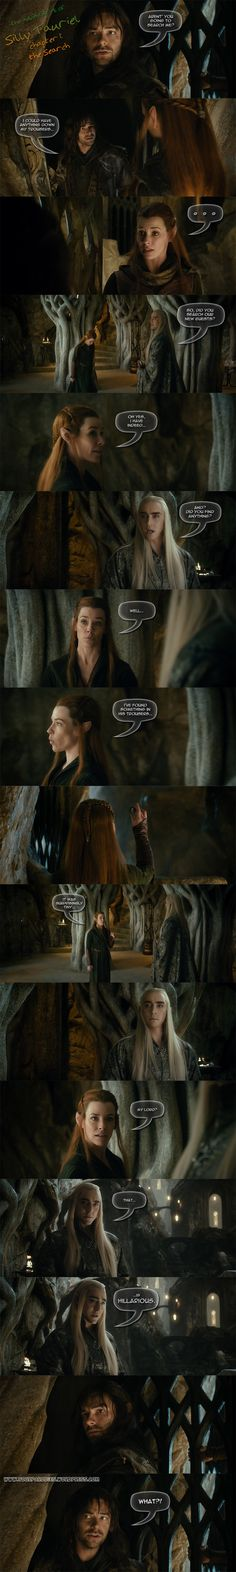 The Adventures of Silly Tauriel Chapter 1 - the Search by yourparodies.deviantart.com on @DeviantArt